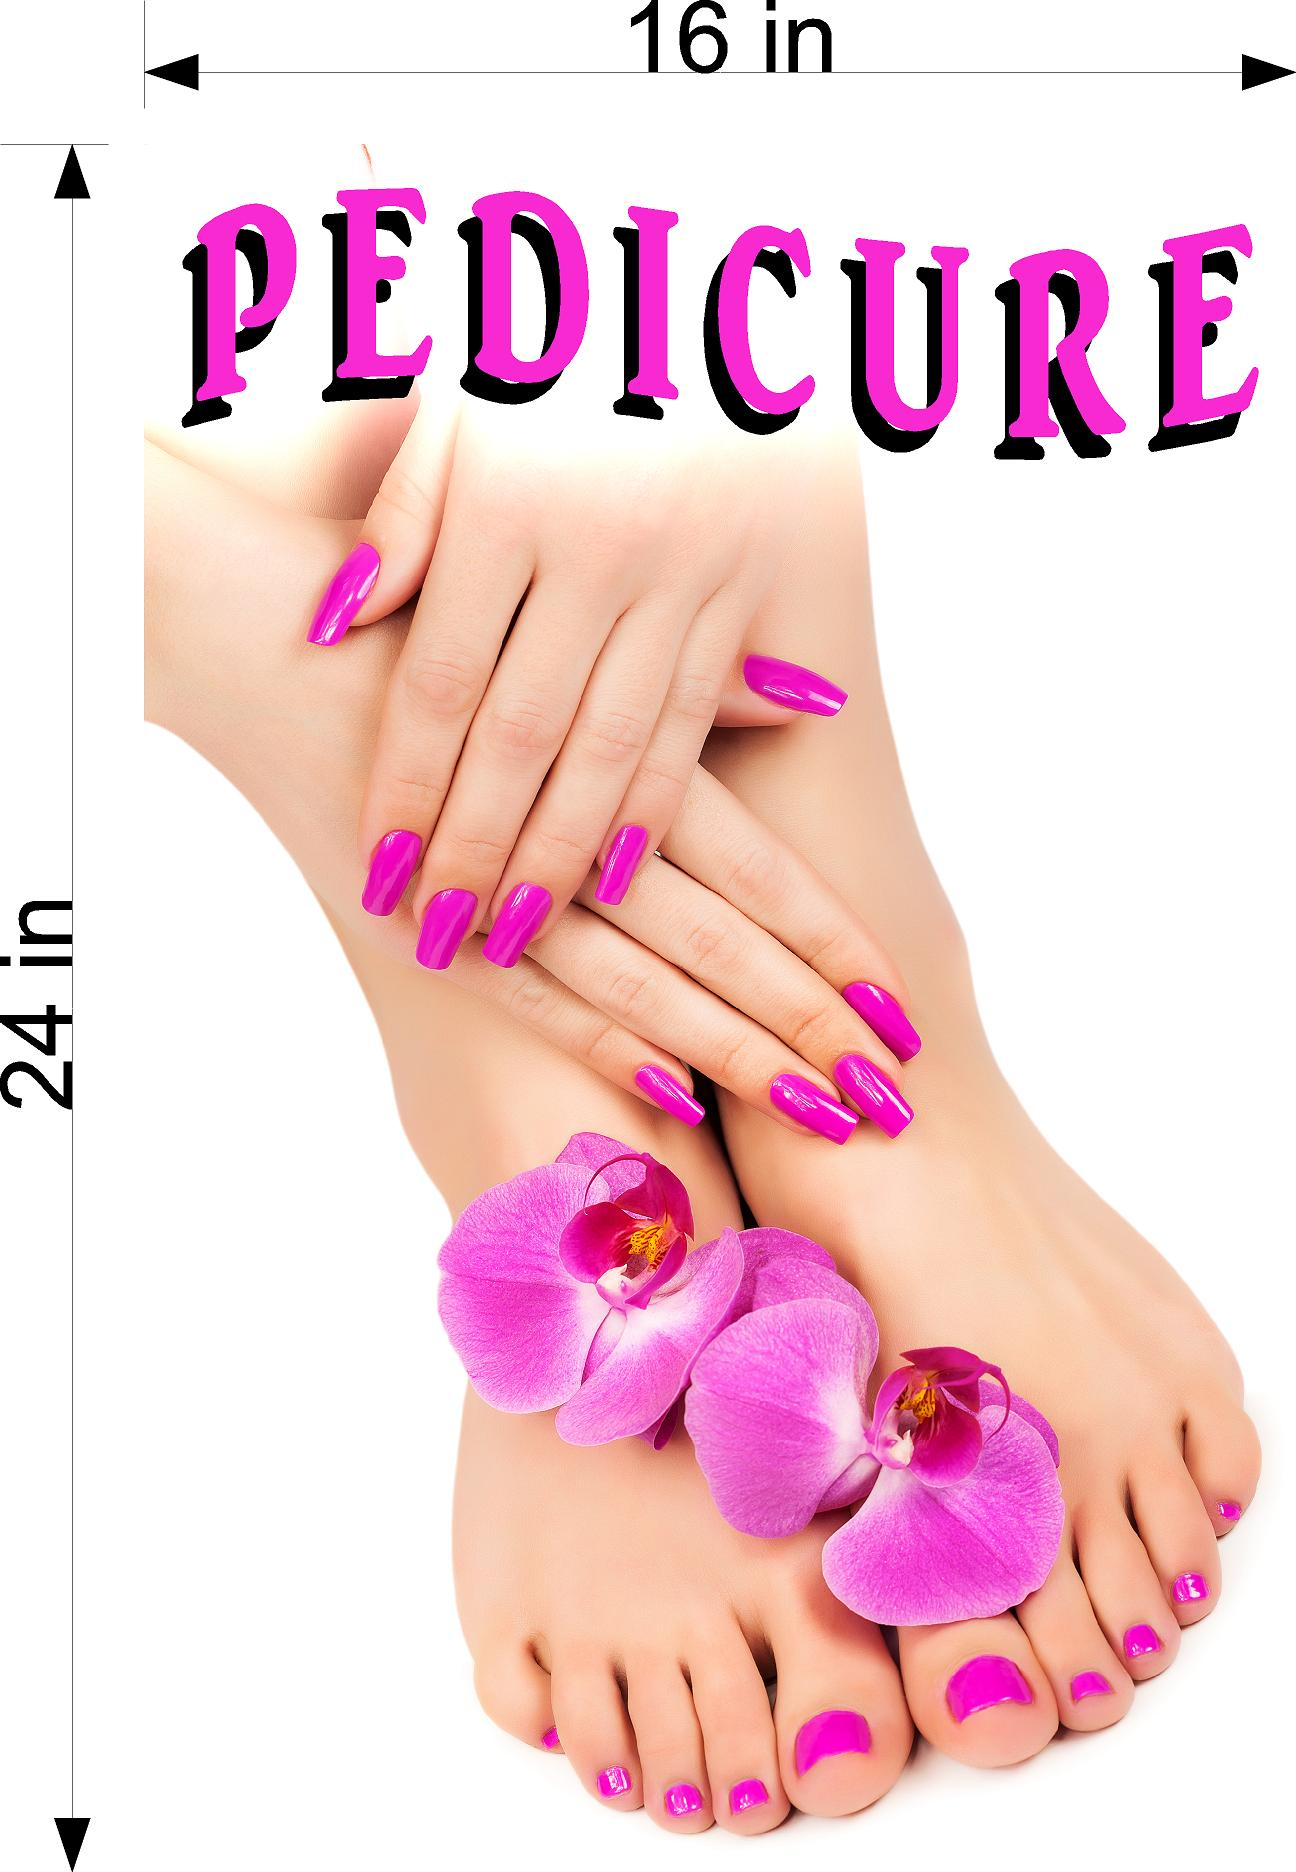 Pedicure 09 Photo-Realistic Paper Poster Premium Matte Interior Inside Sign Advertising Marketing Wall Window Non-Laminated Vertical